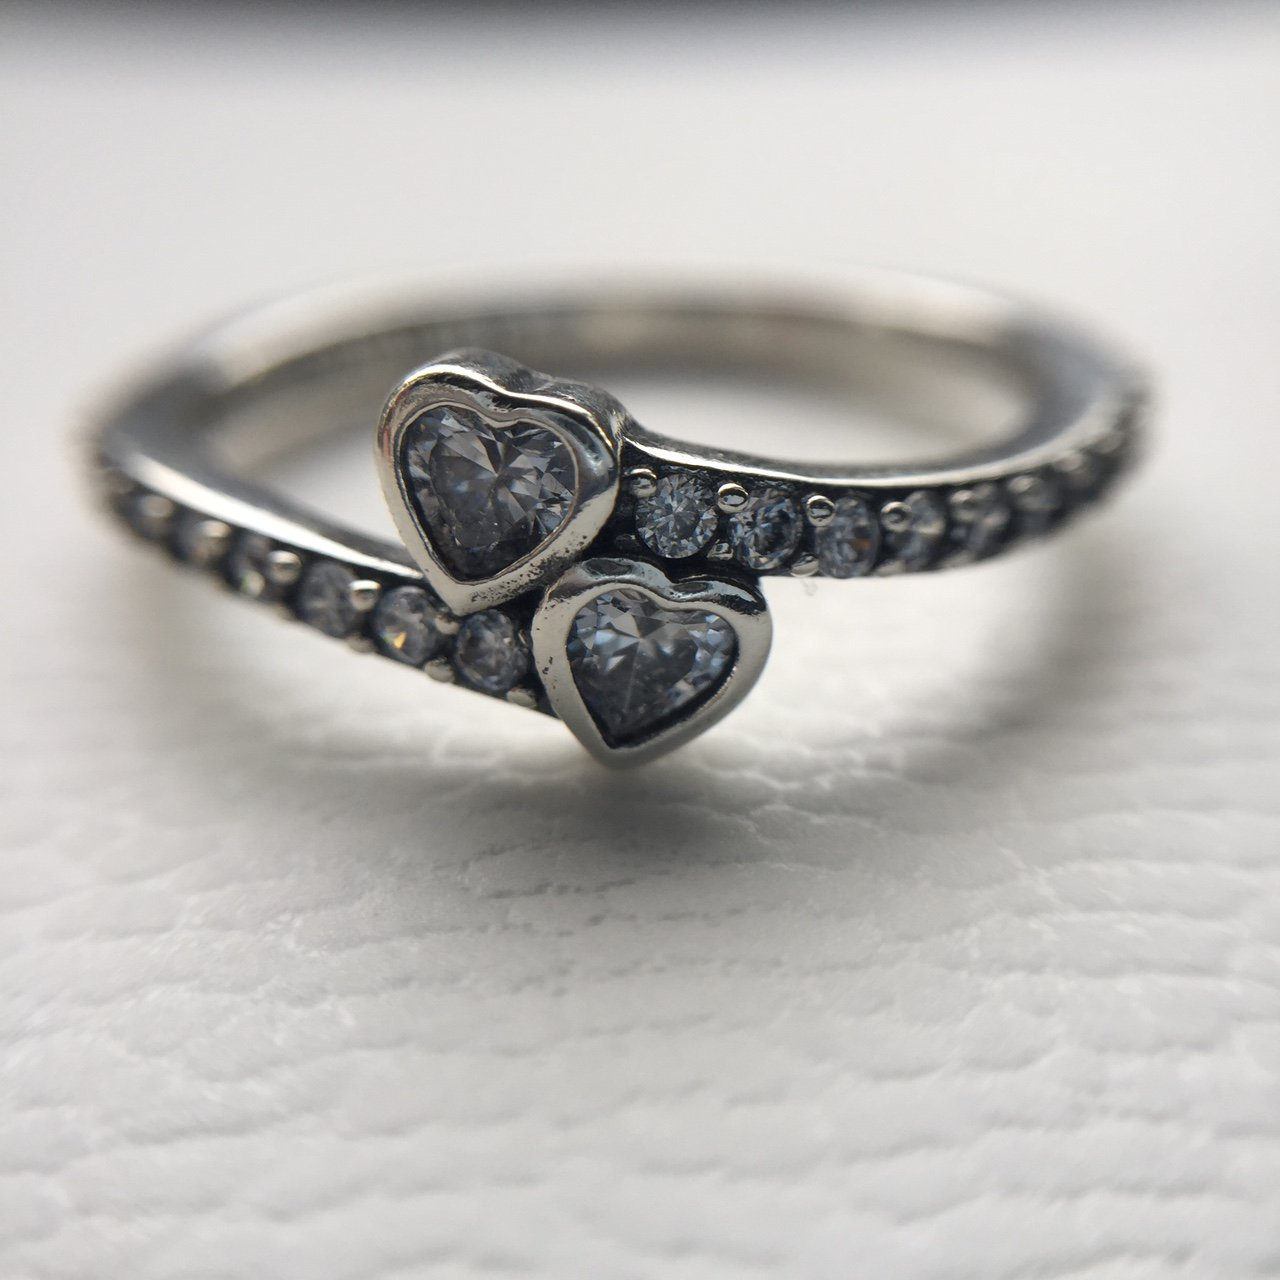 7beb1cca8 @vickysmith_. 2 years ago. Cossall, United Kingdom. Forever hearts Pandora  ring, size 56. Excellent condition as its brand new ...